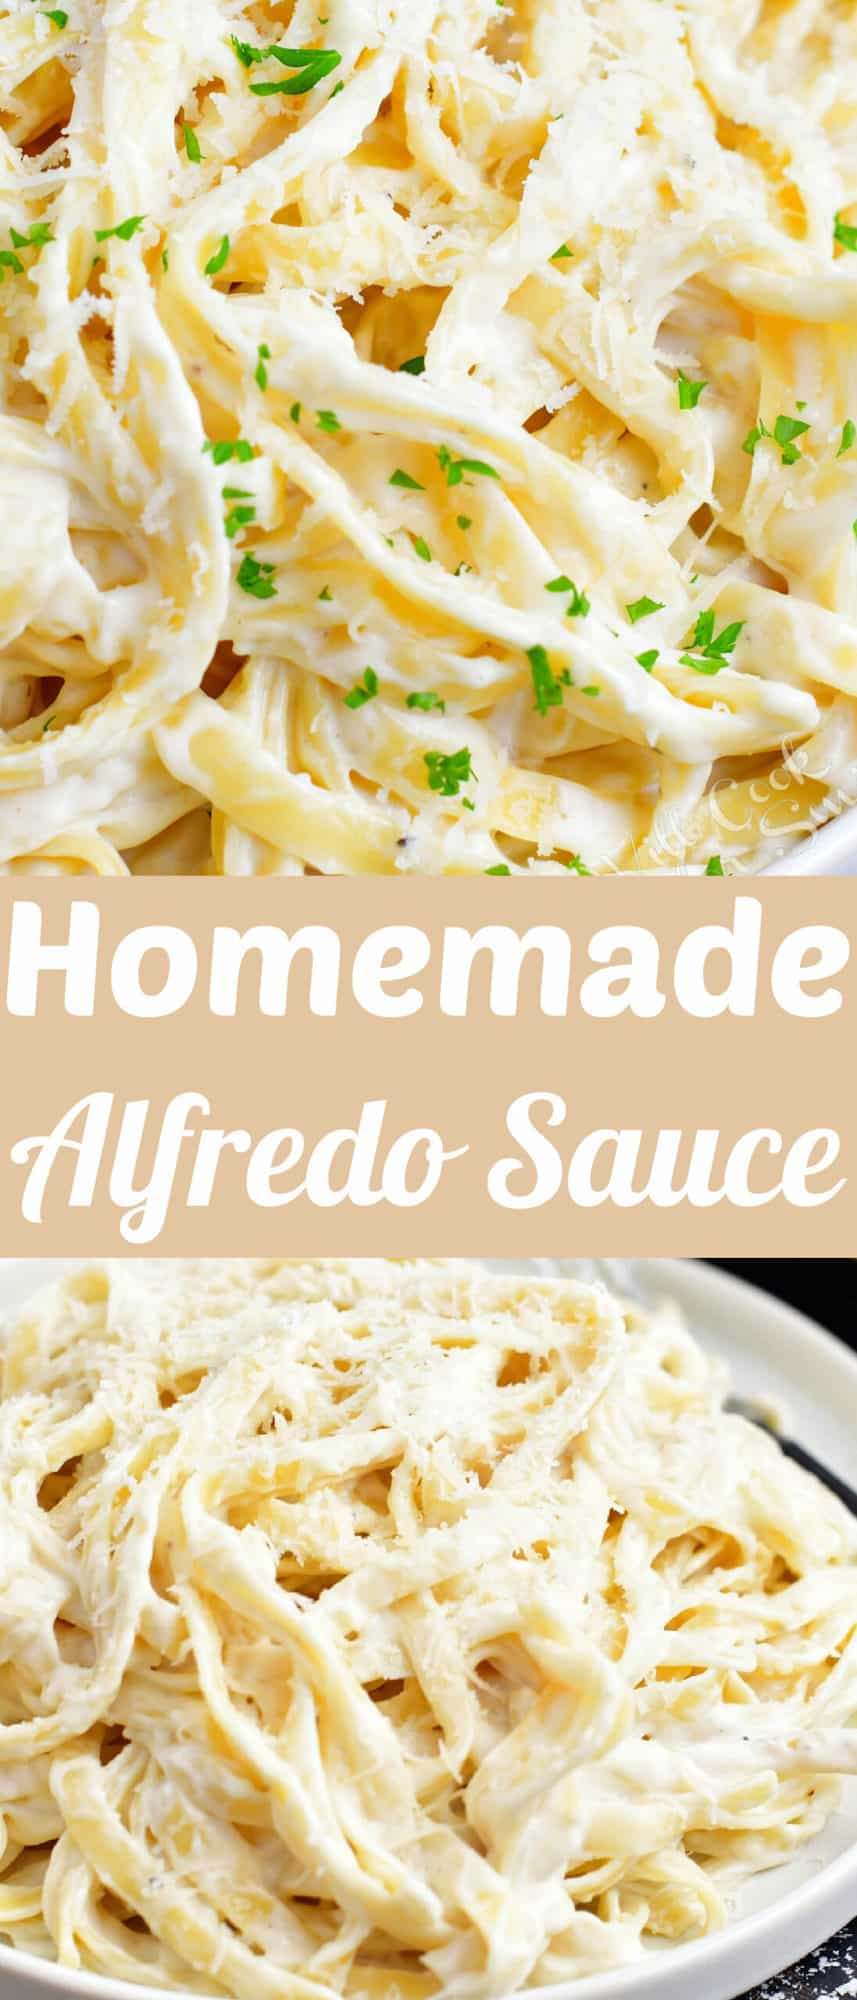 title collage of two images of pasta tossed in Alfredo sauce